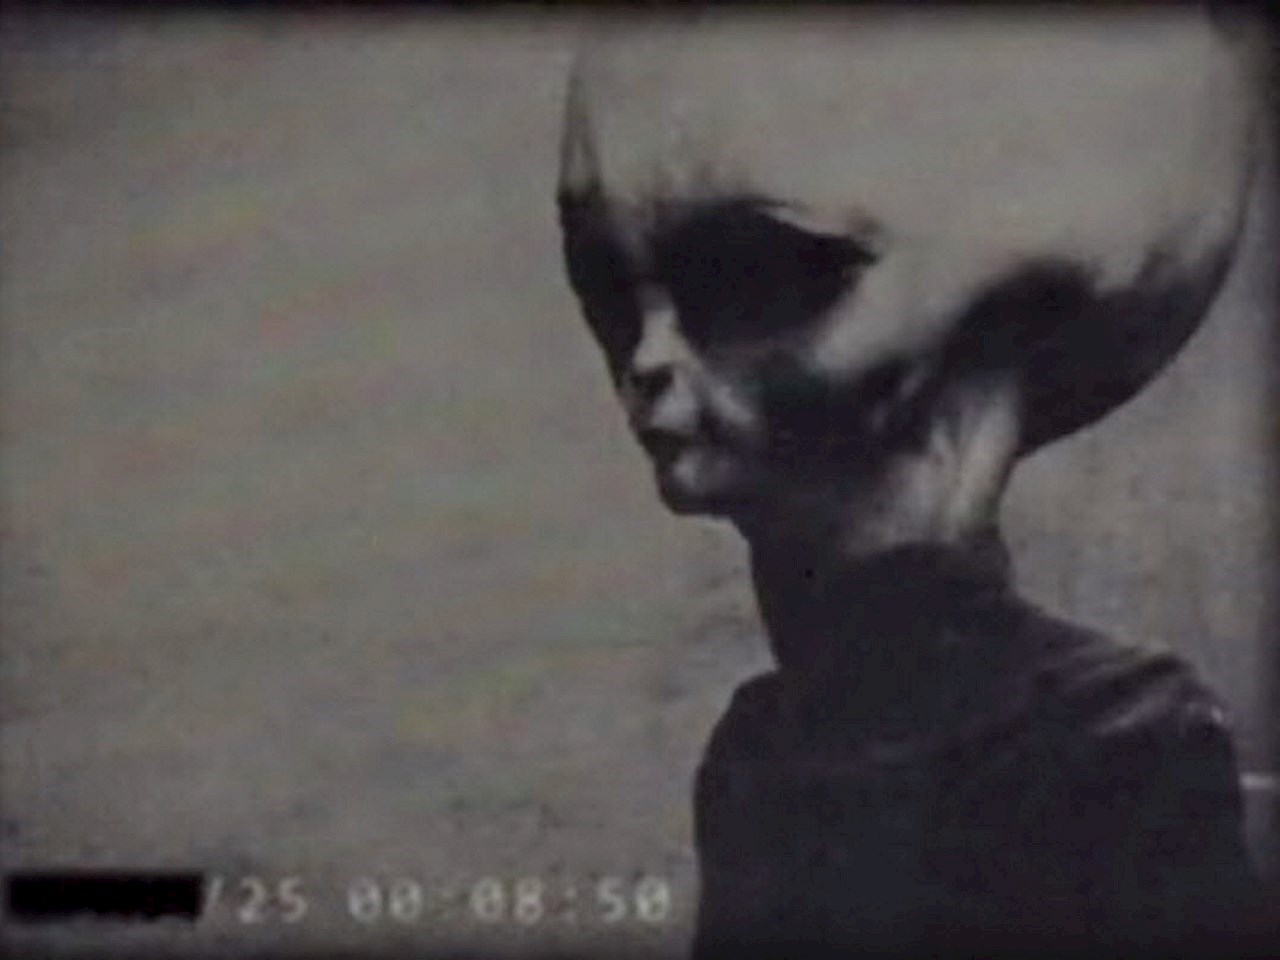 Grey alien from the Zeta Reticuli star system